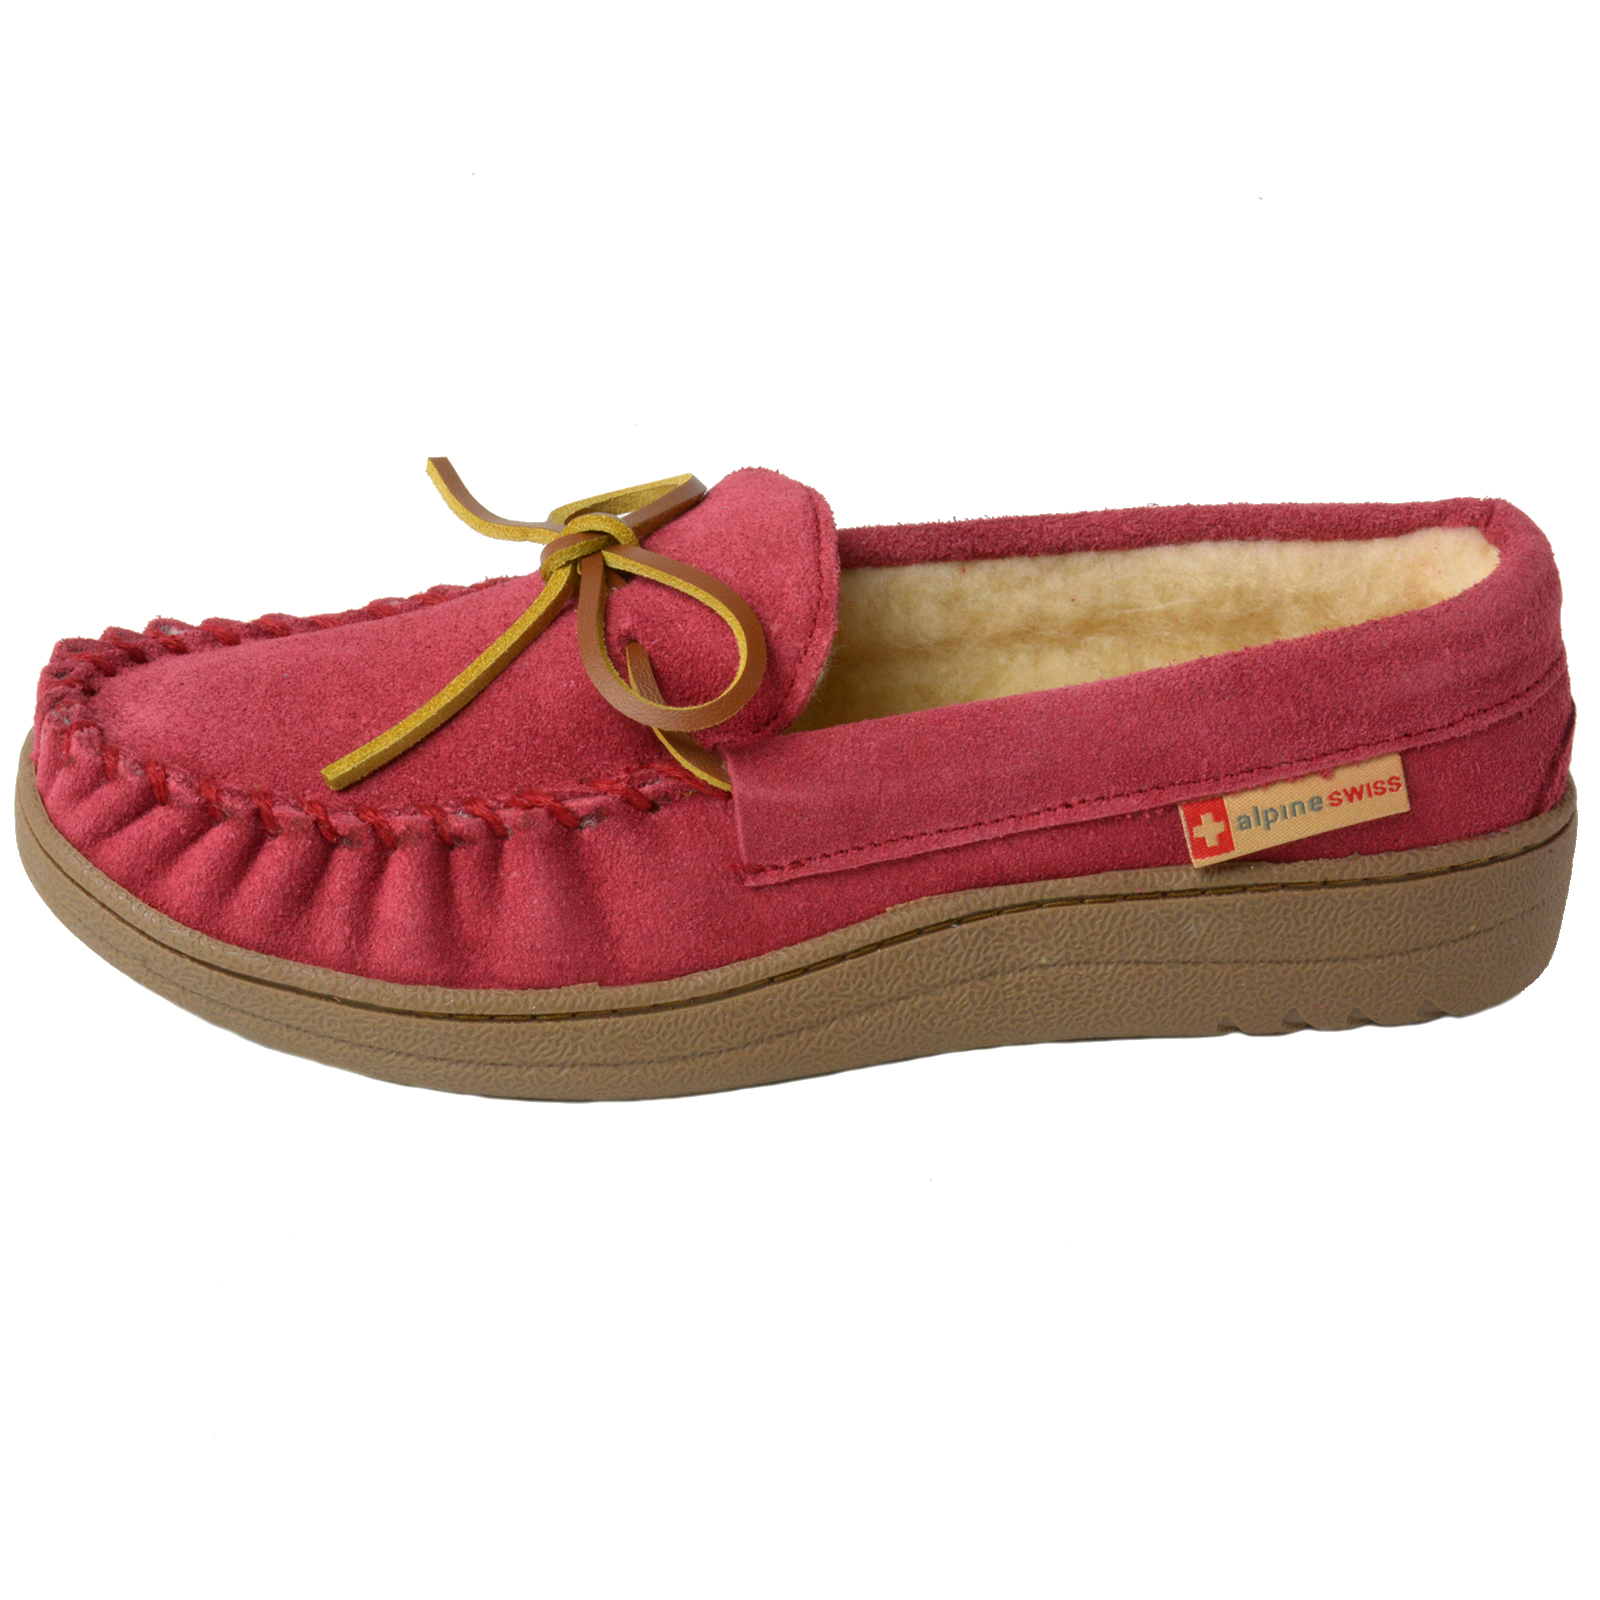 Alpine-Swiss-Sabine-Womens-Suede-Shearling-Moccasin-Slippers-House-Shoes-Slip-On miniature 41